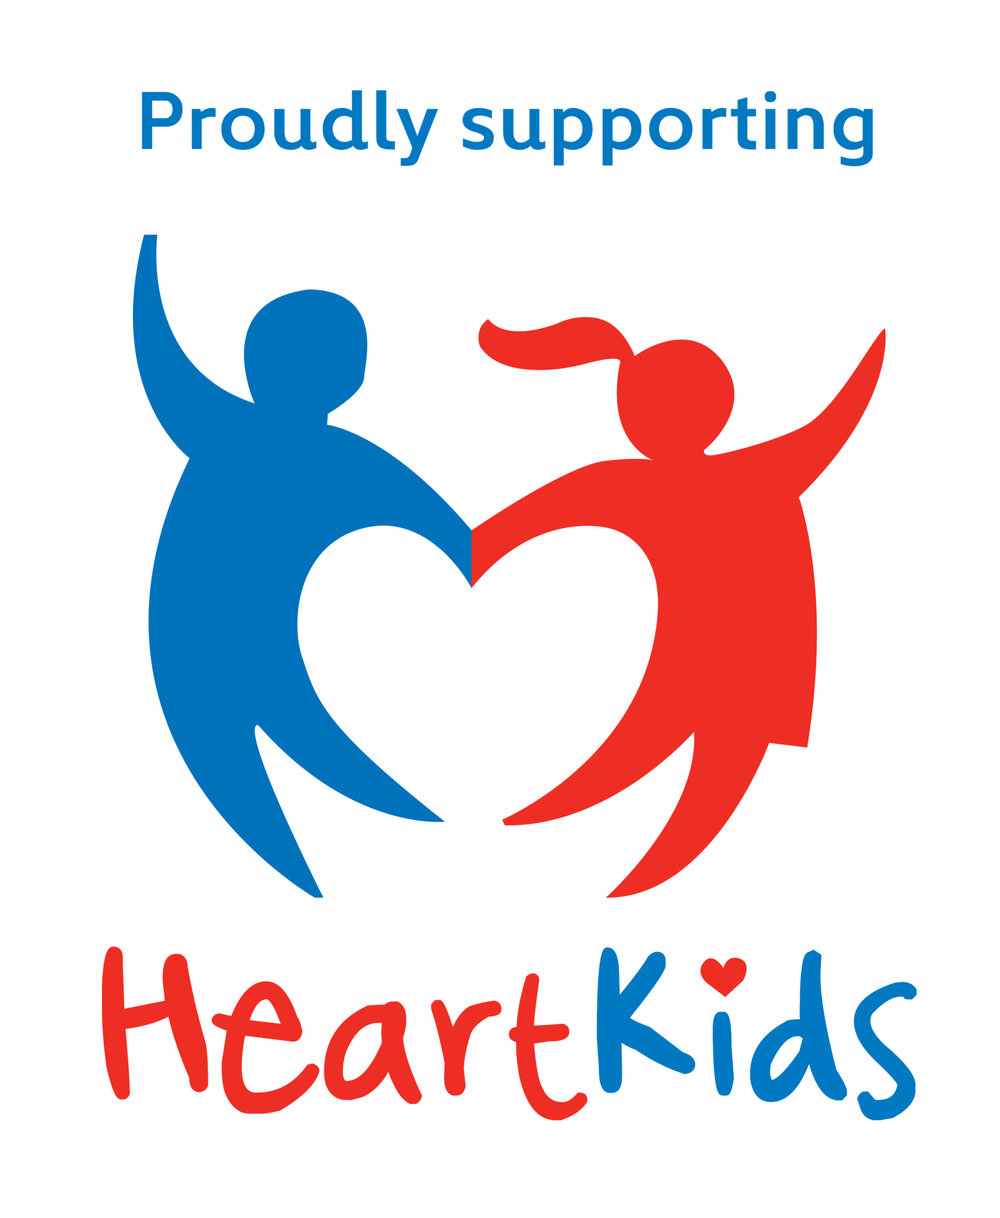 heartkids_LOGO.RGB.supporting.jpg